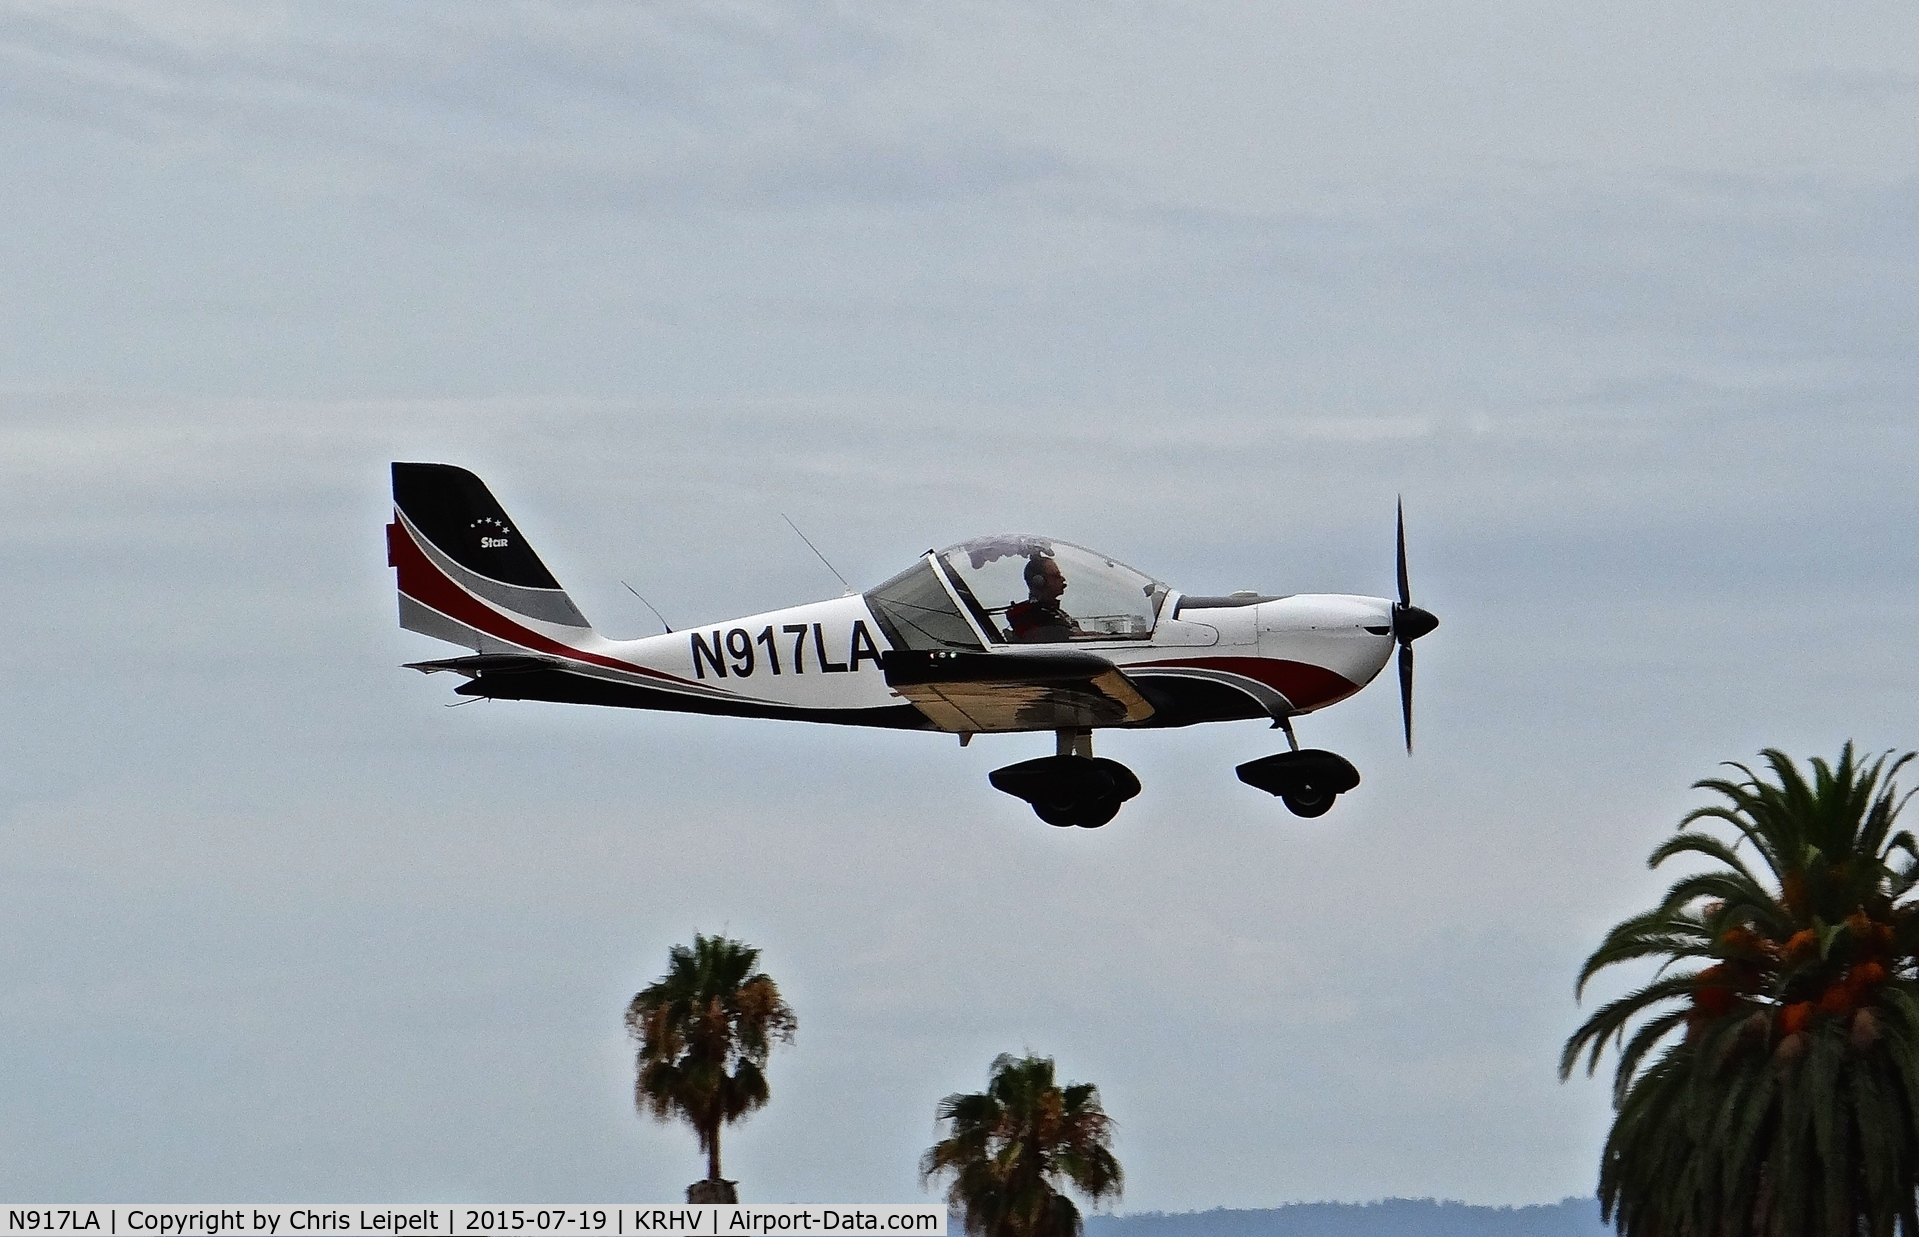 N917LA, 2007 Evektor-Aerotechnik Sportstar Plus C/N 20070917, California-based 2007 Sportstar Plus departing at Reid Hillview Airport, San Jose, CA.